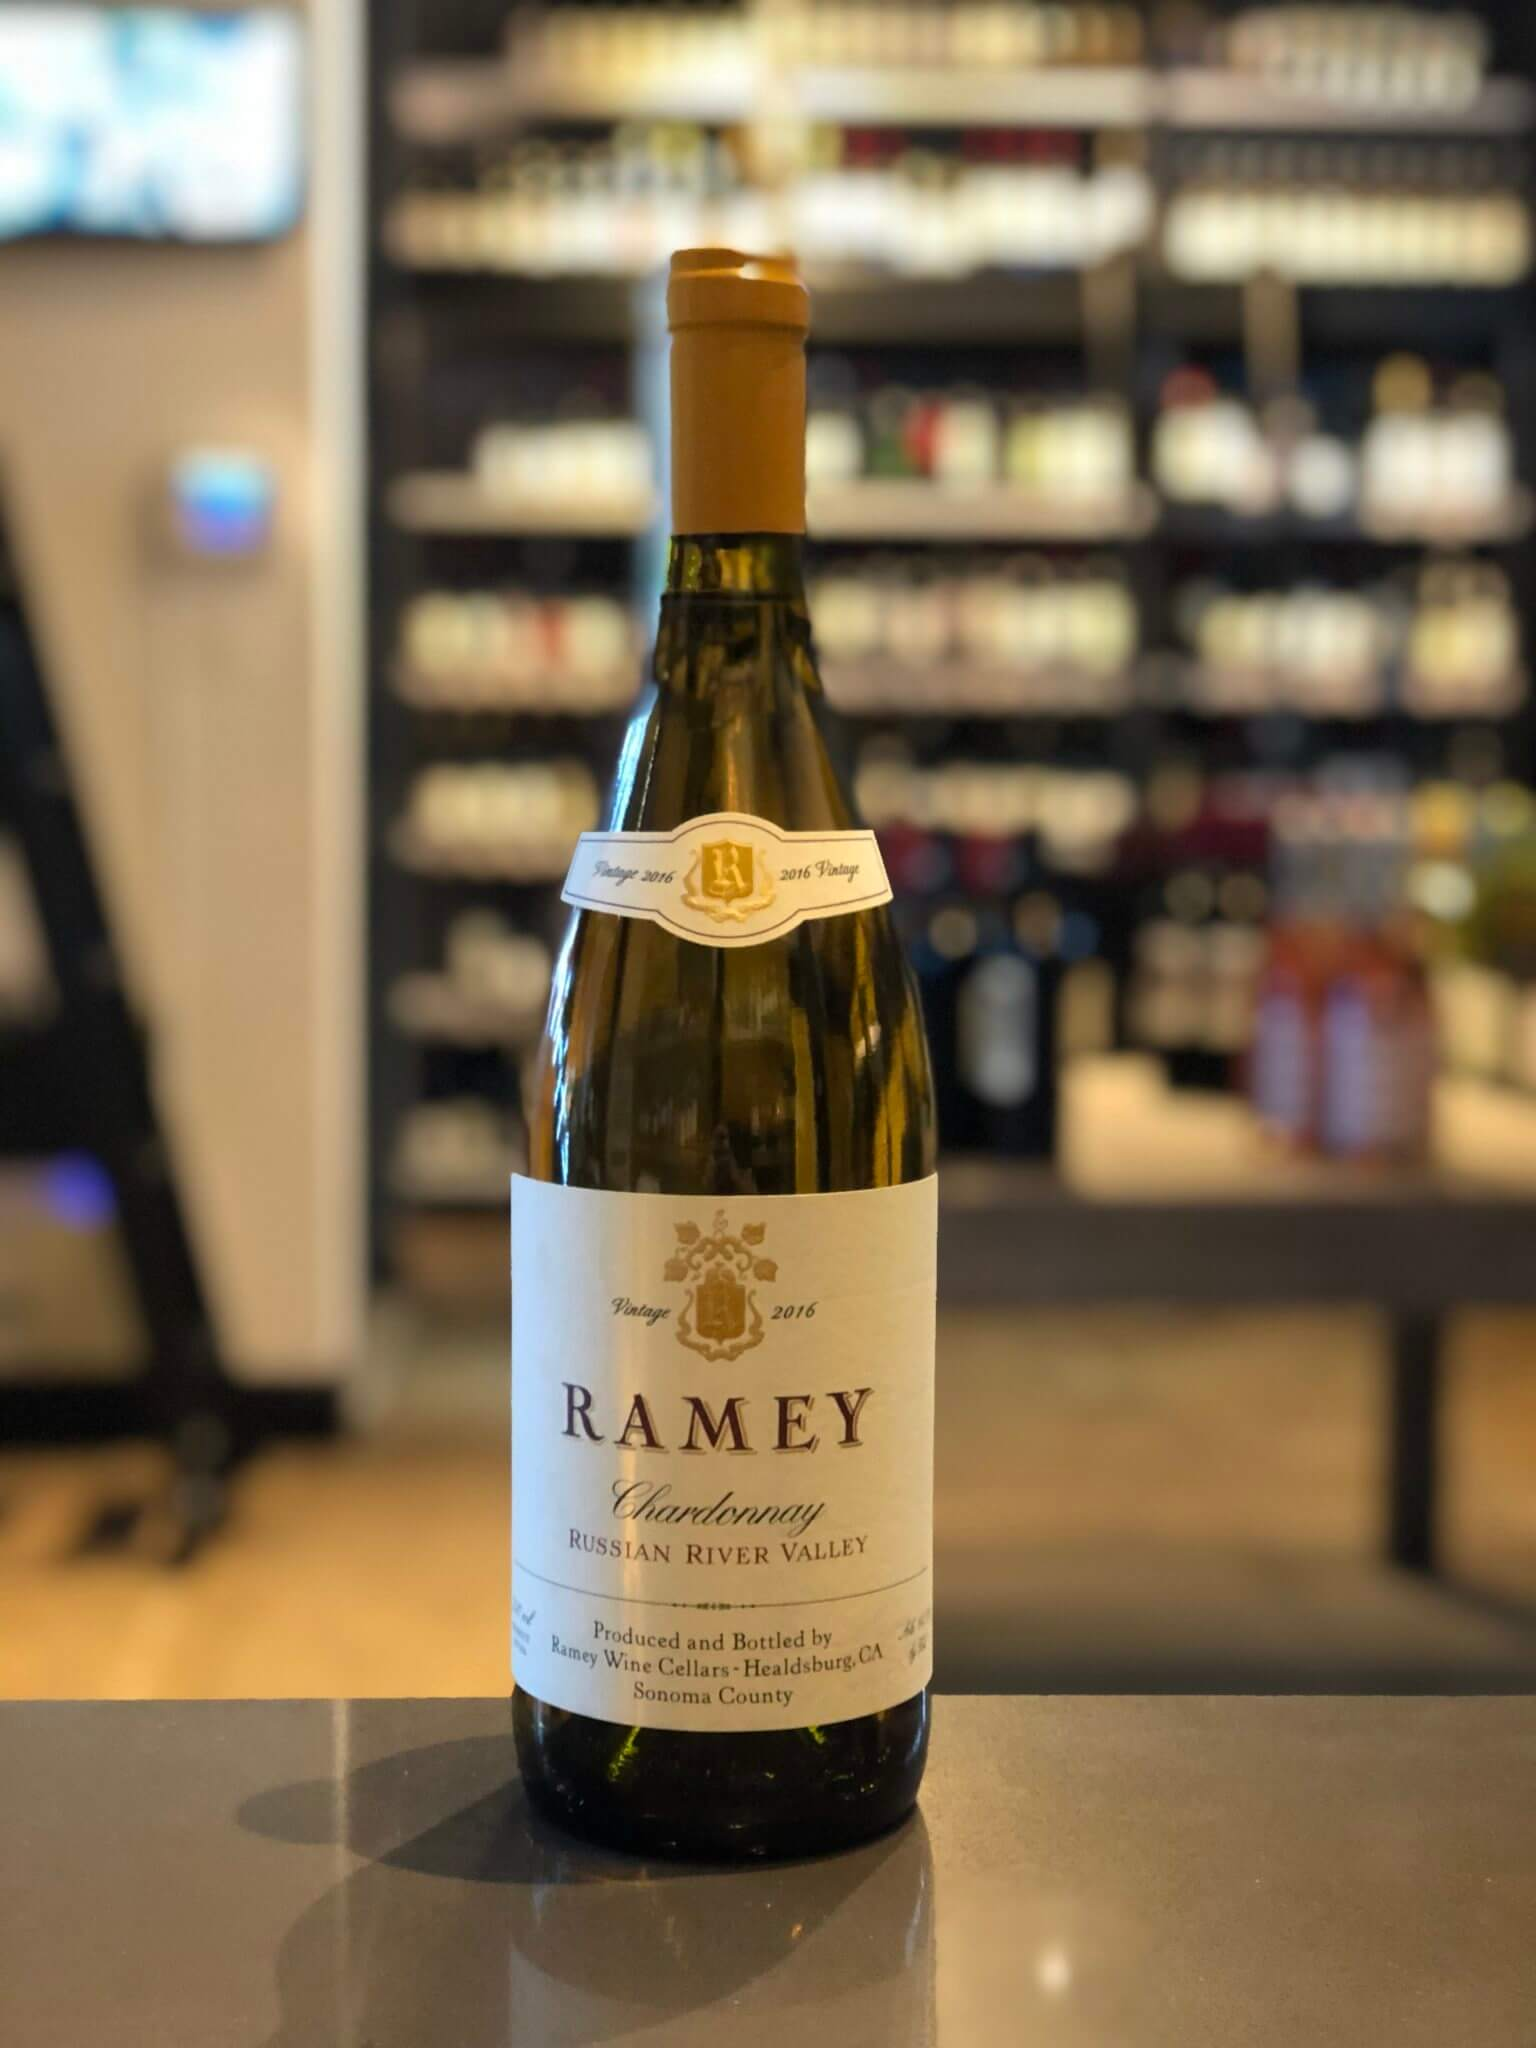 Ramey Wine Cellars, Russian River Valley Chardonnay 2016